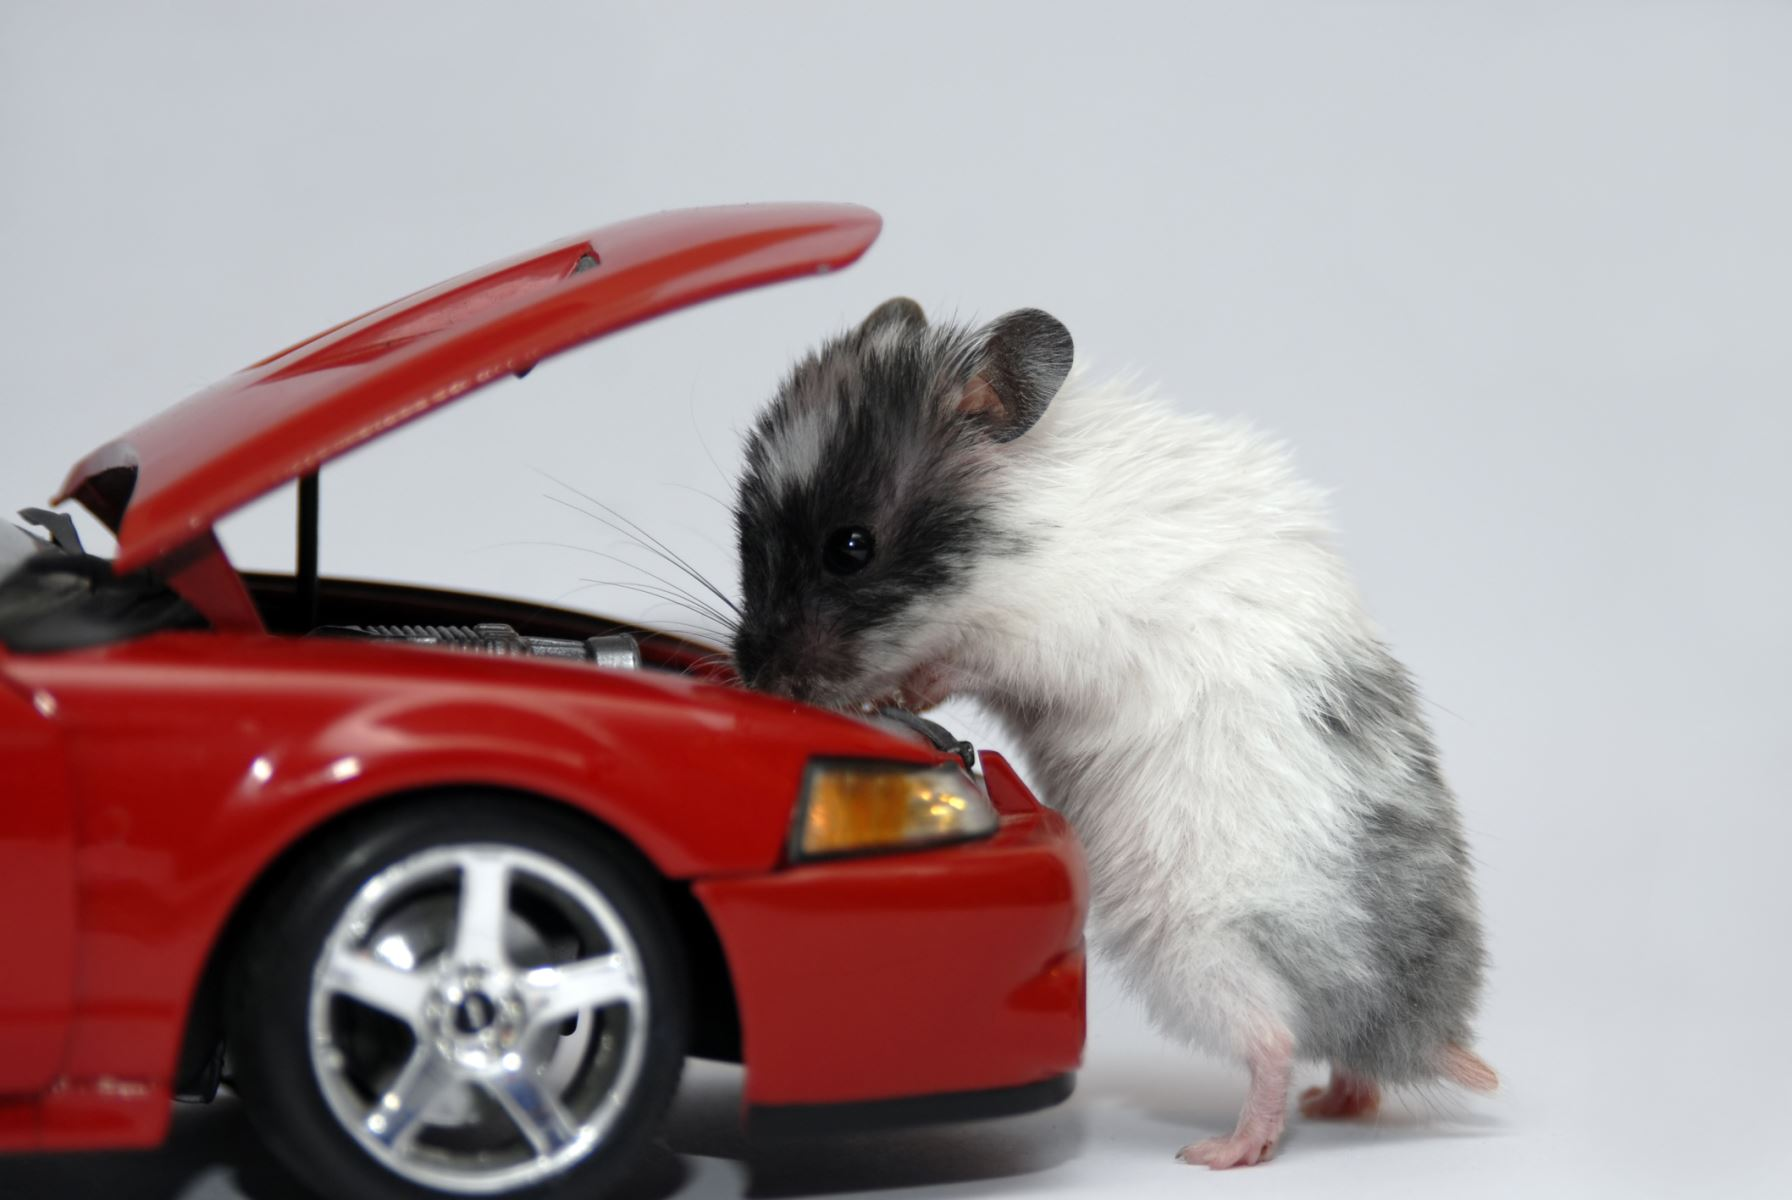 Mice can do significant damage to autos